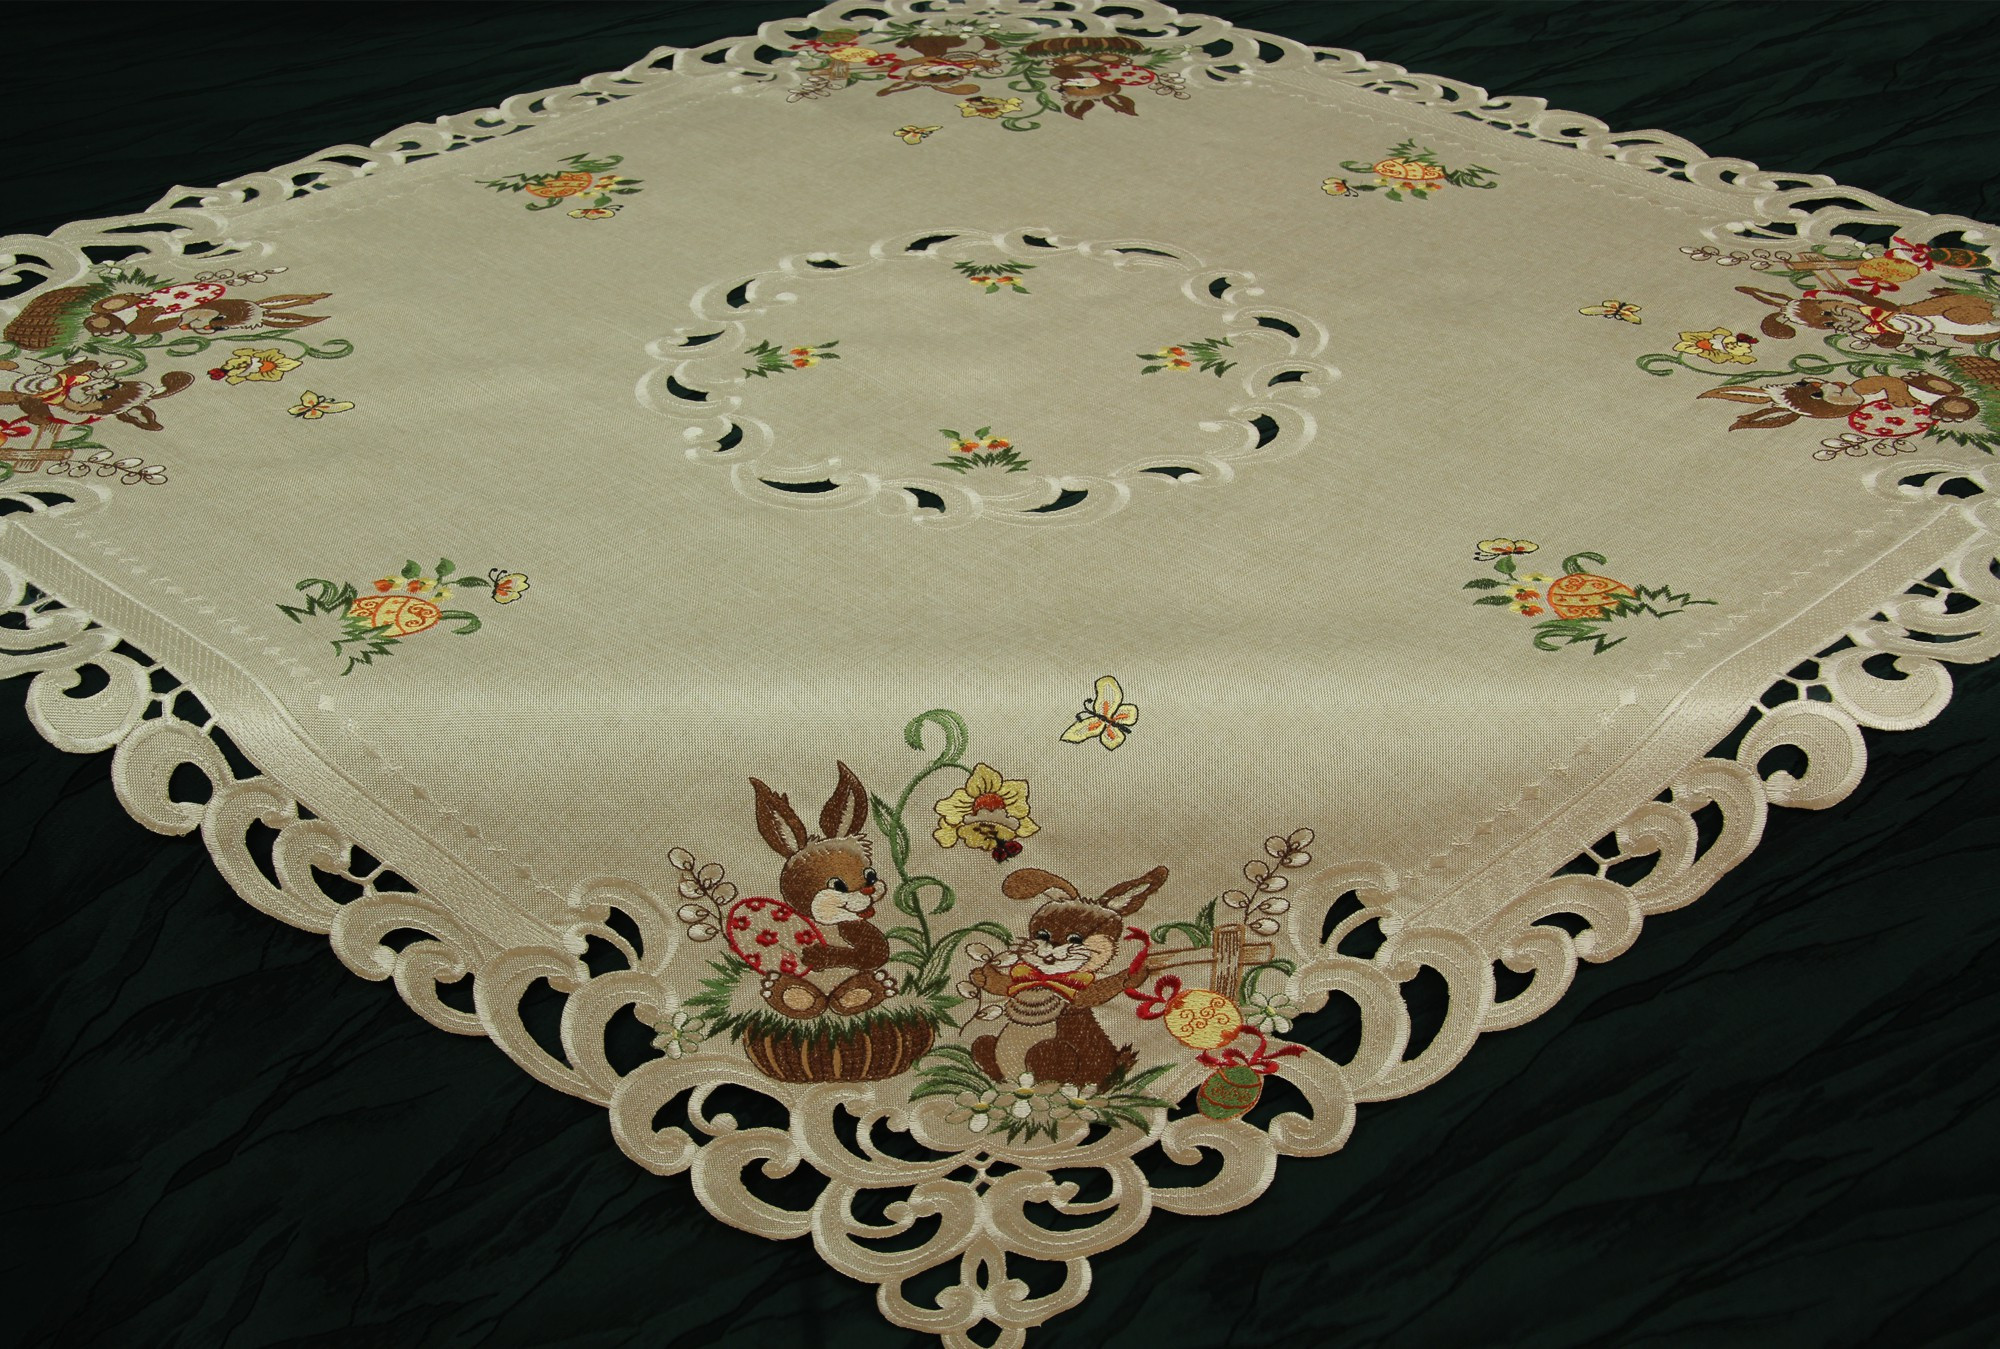 Doily Tablecloth Elegant Easter Table Runner Doily Tablecloth Linen Look Beige Of Charming 49 Pictures Doily Tablecloth